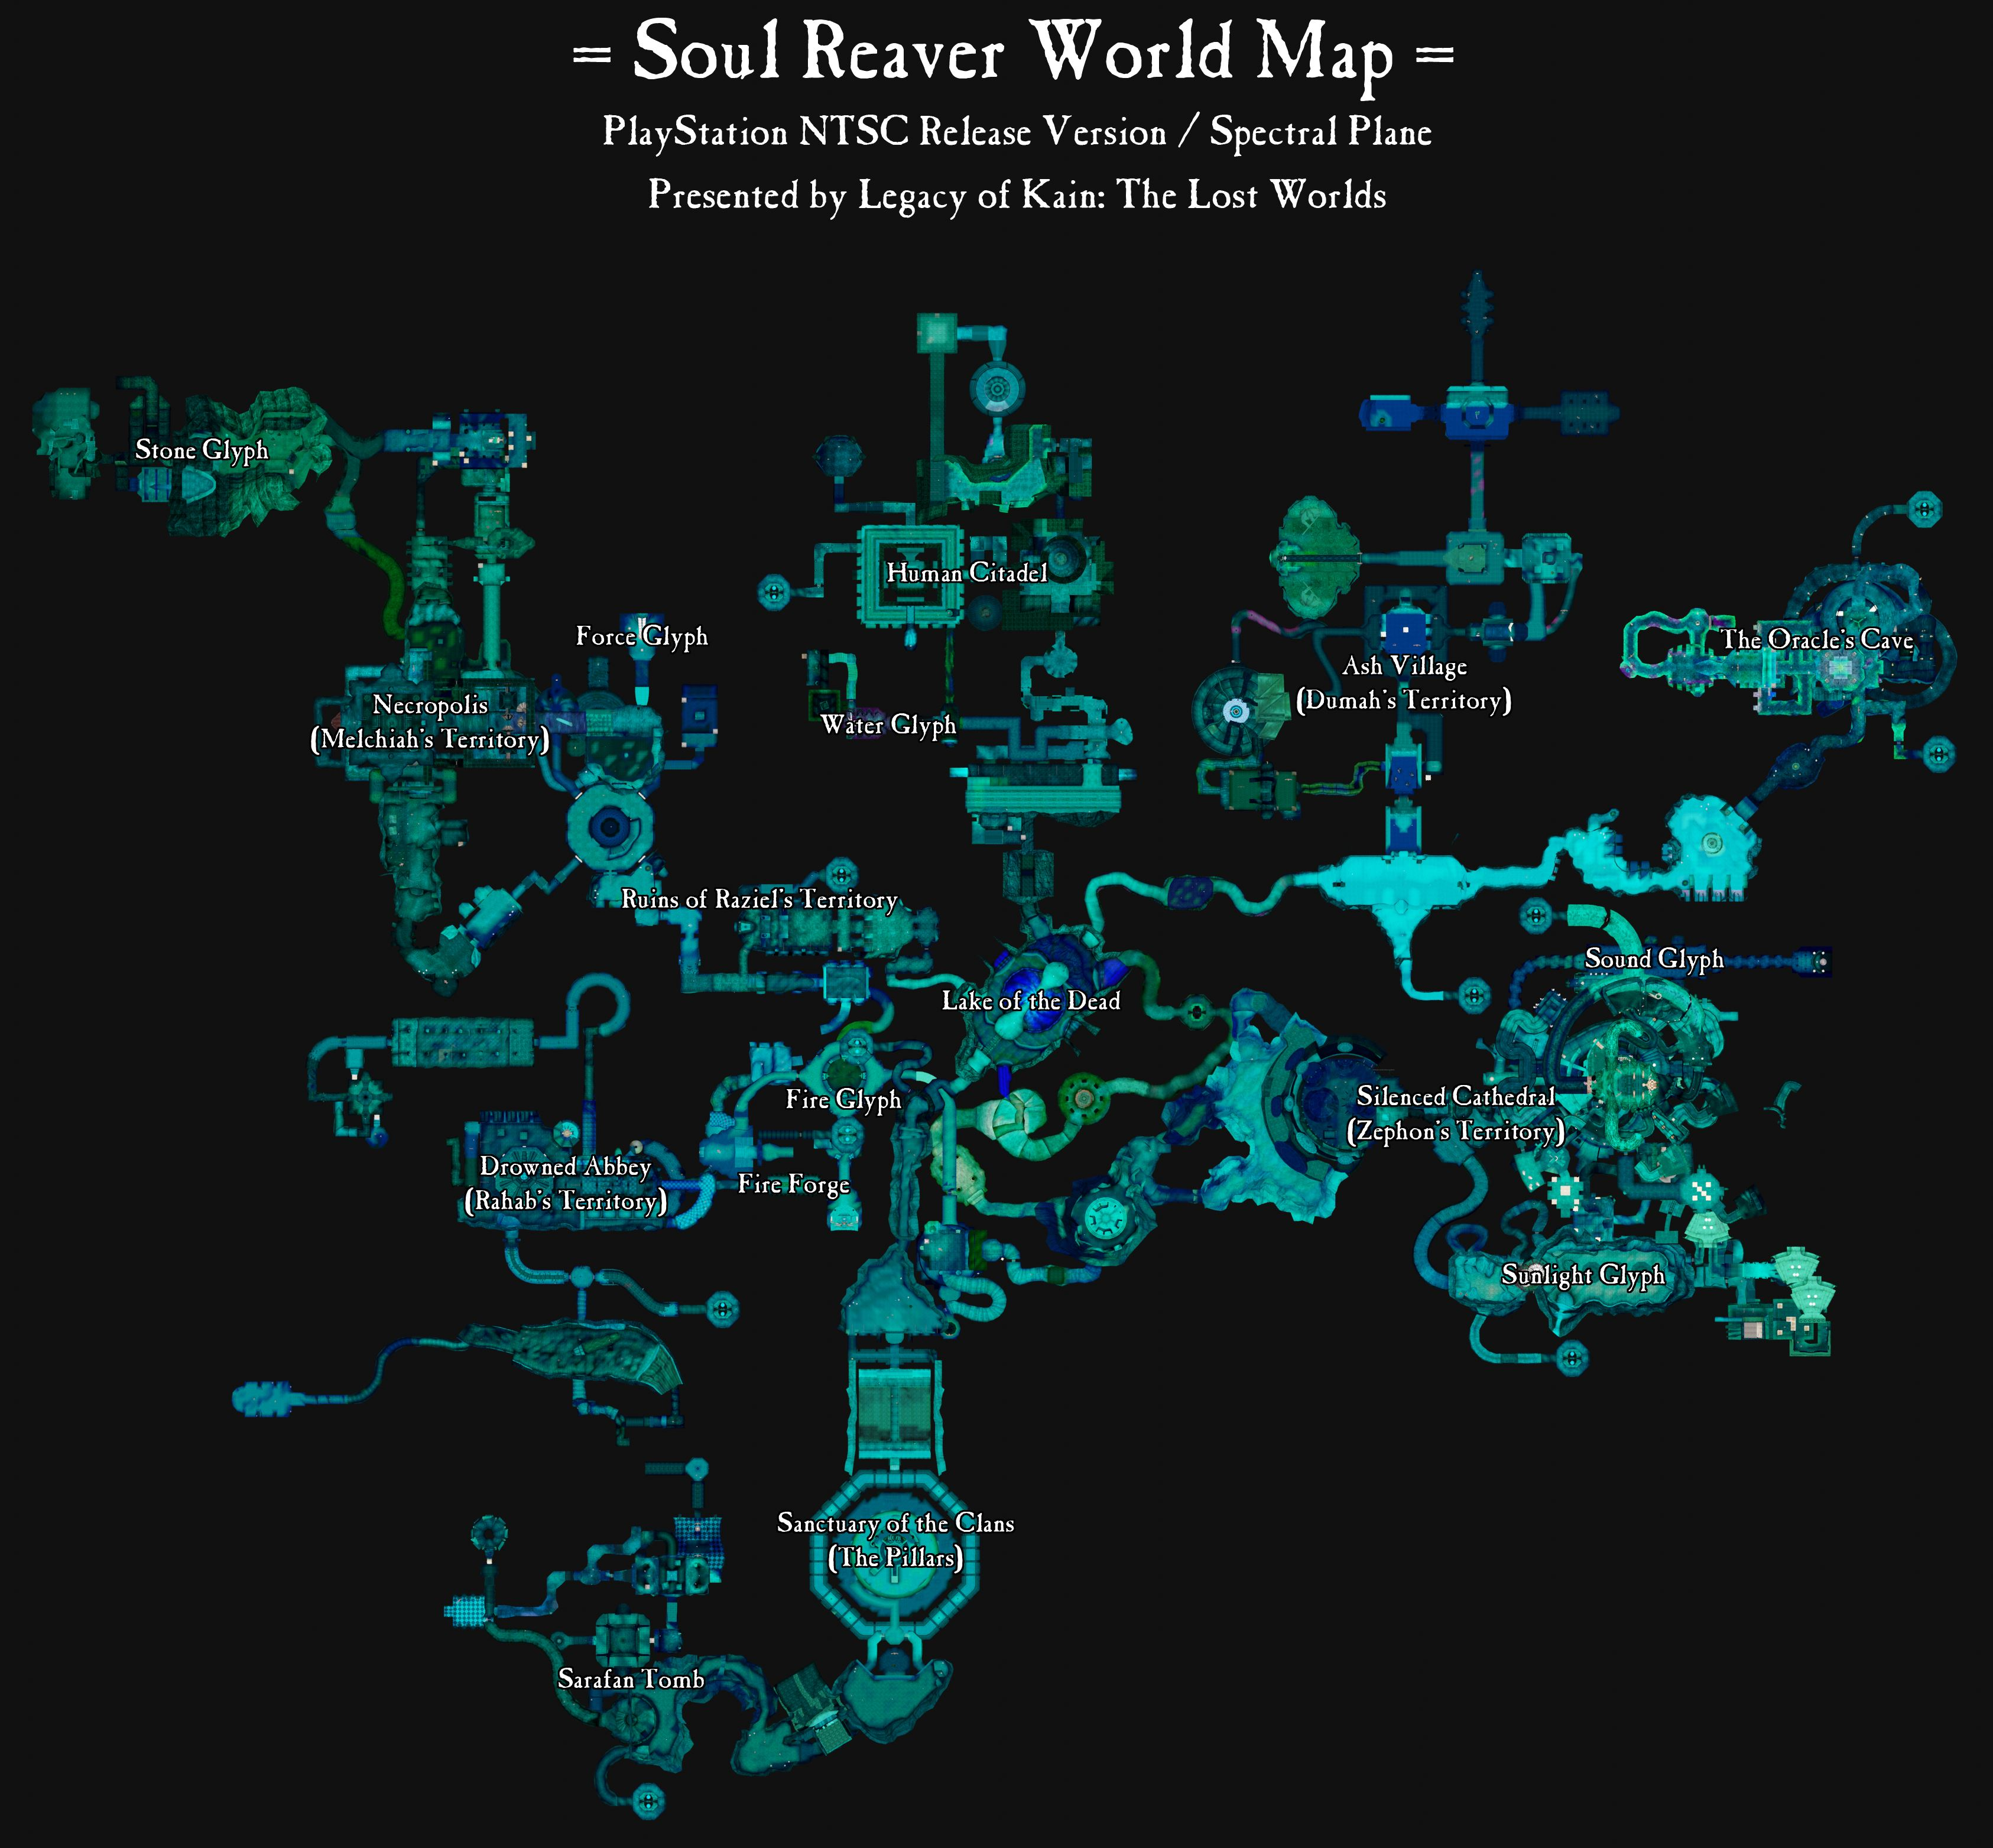 World Map Evolution-01-Maps-Soul Reaver World Map-NTSC Release-Spectral-Annotated.jpg